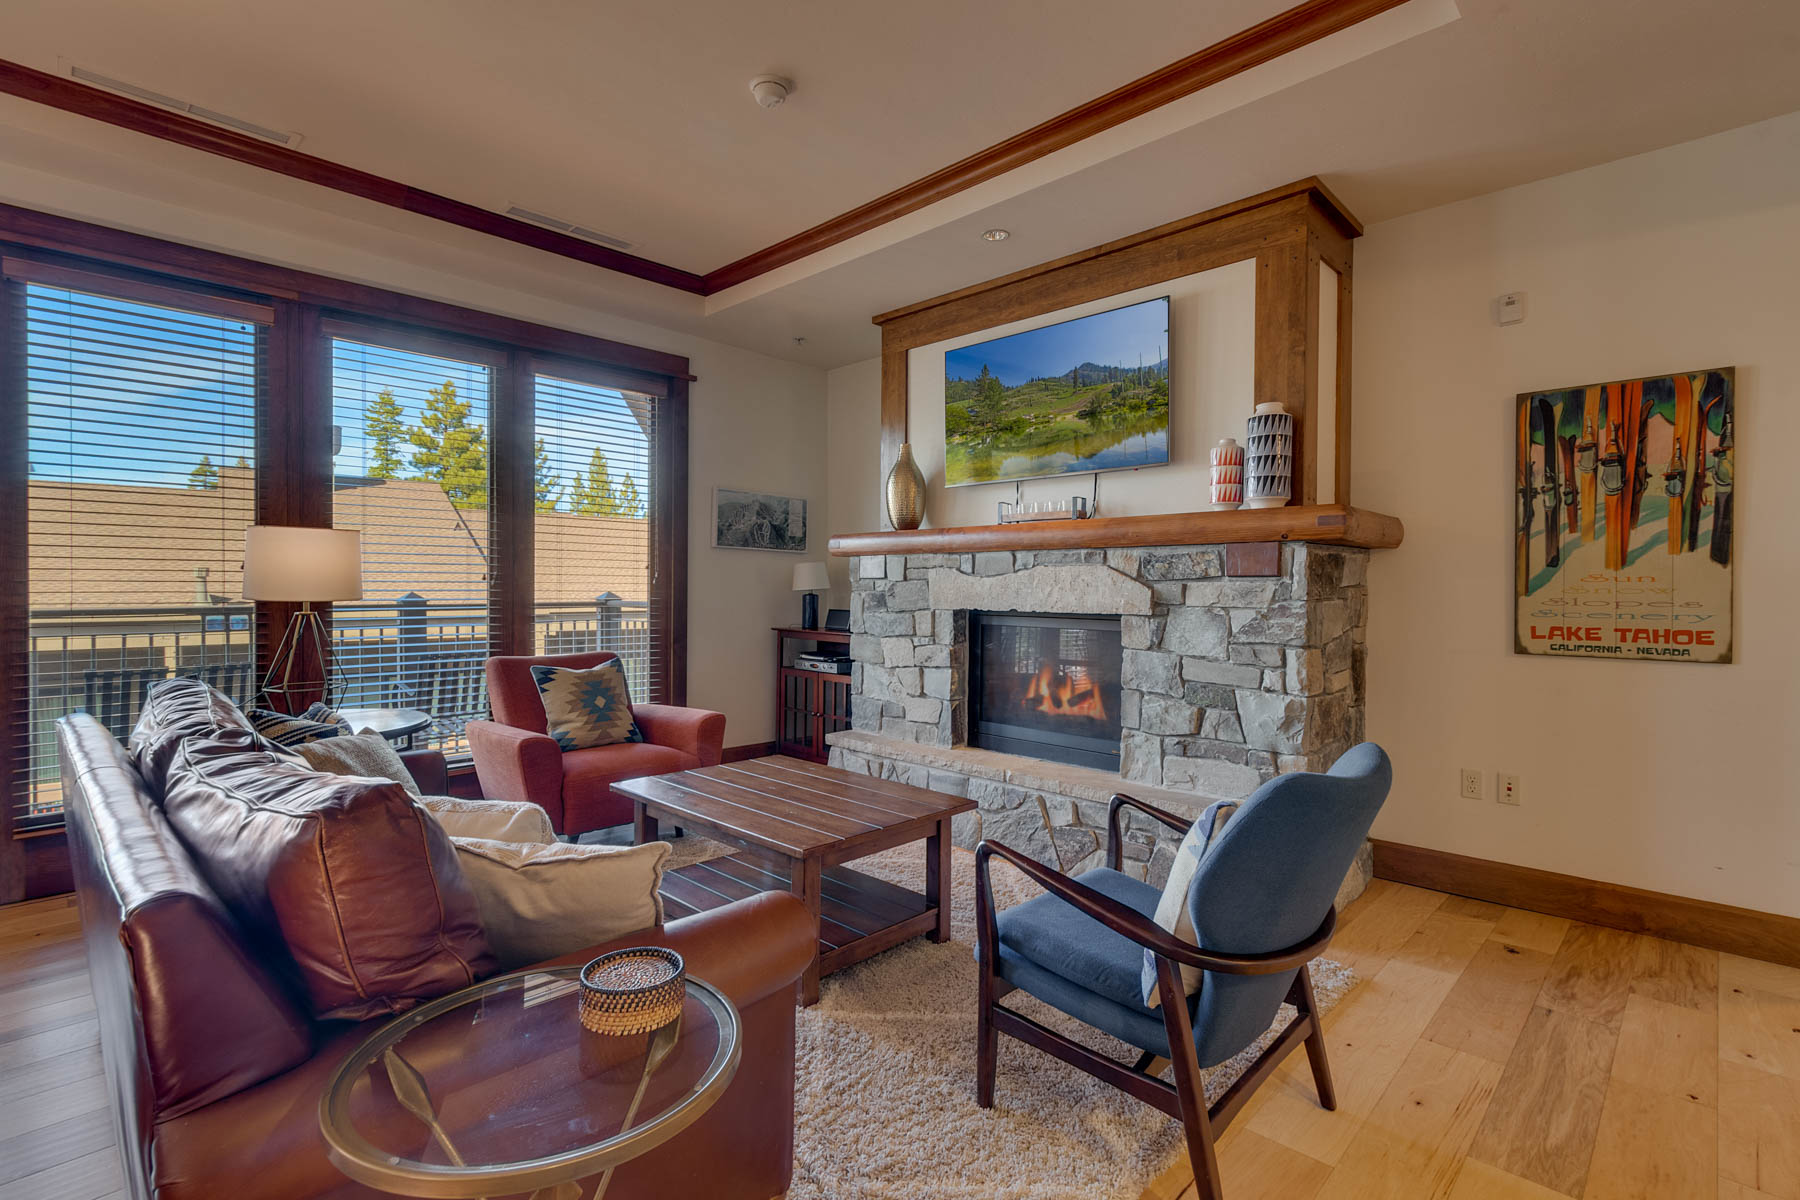 Property for Active at 3001 Northstar Drive #207, Truckee, CA 3001 Northstar Drive #207 Truckee, California 96161 United States